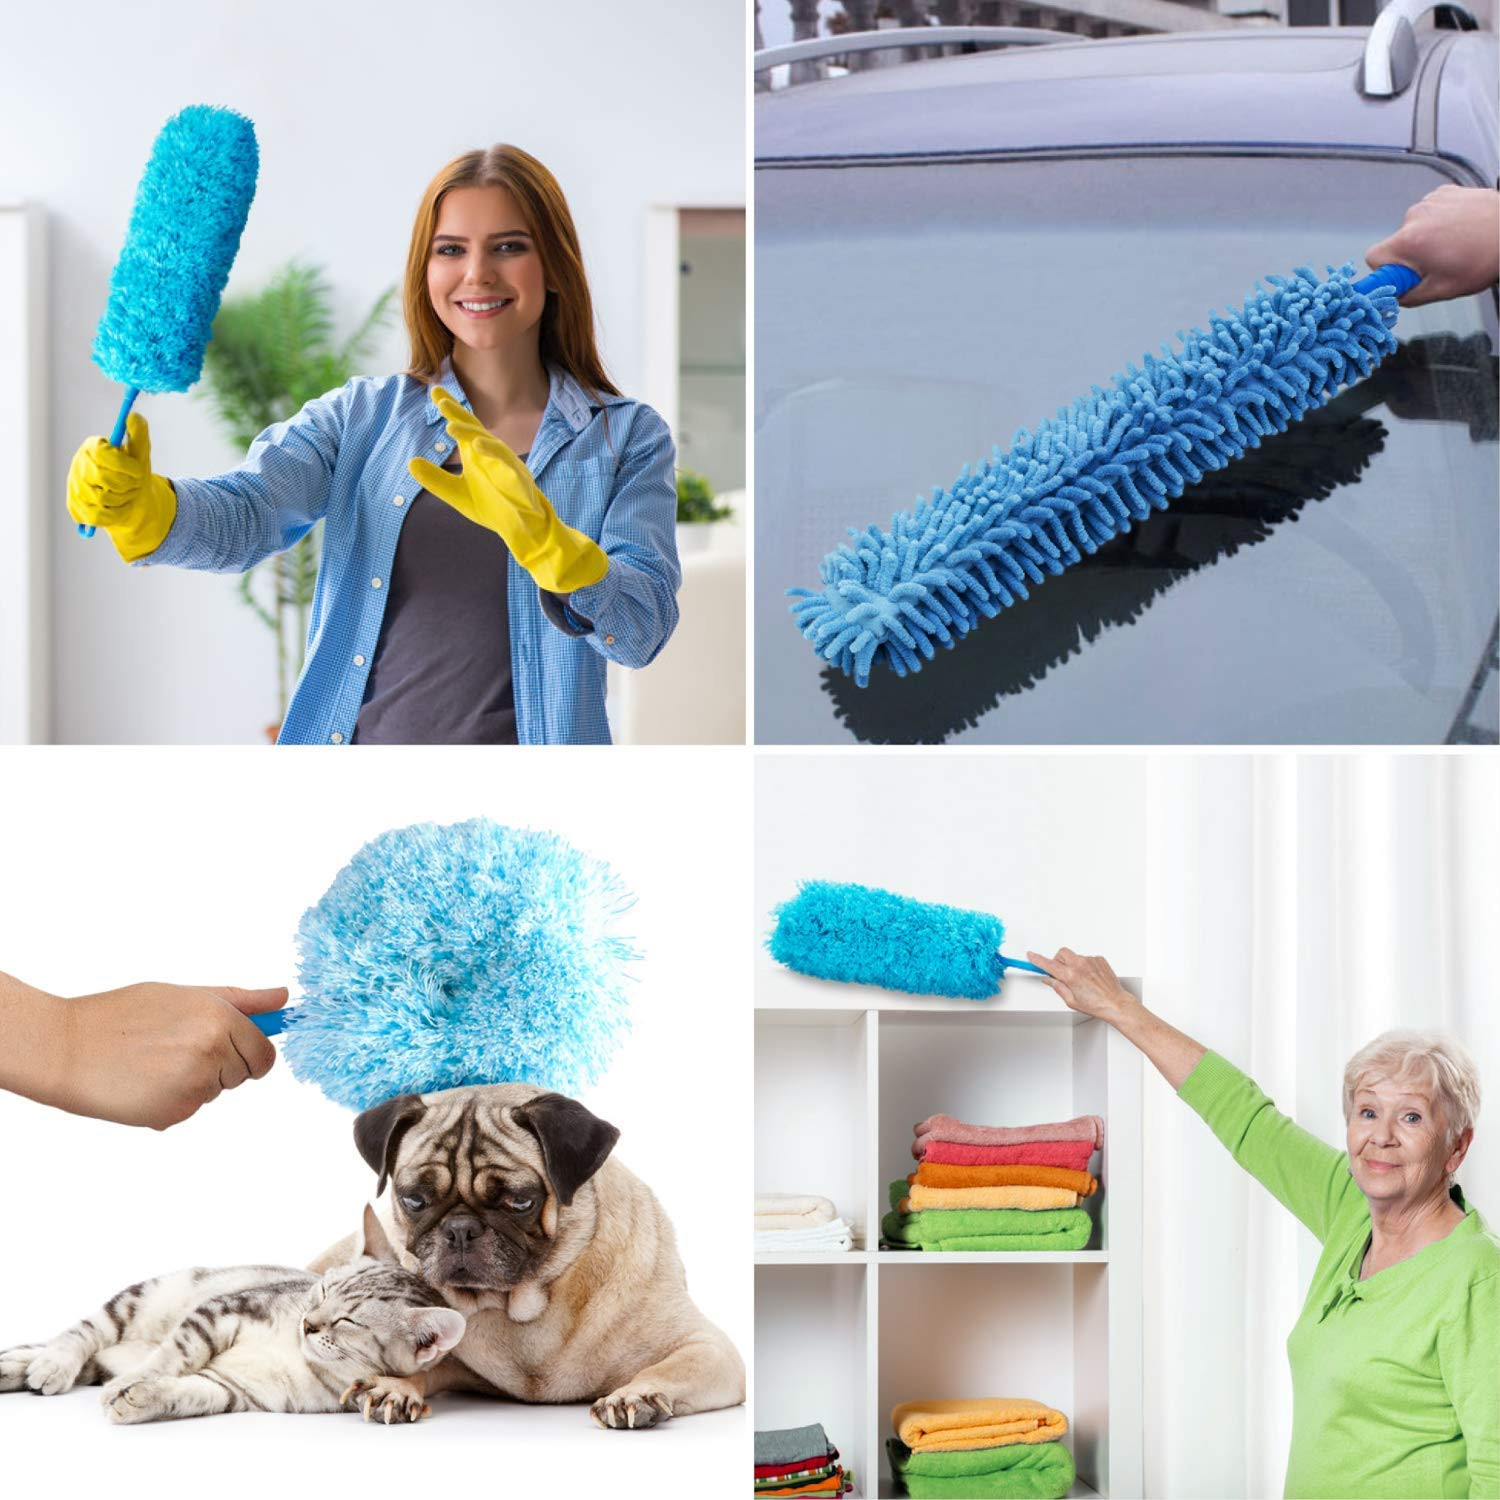 4pcs Best Microfiber Duster with Extension Pole | Large Fluffy Microfiber Cobweb Duster, Extra Large Microfiber Feather Duster, Flexible Microfiber Ceiling & Fan Duster | 4-Foot Telescopic Pole by SKA HomeStore (Image #7)